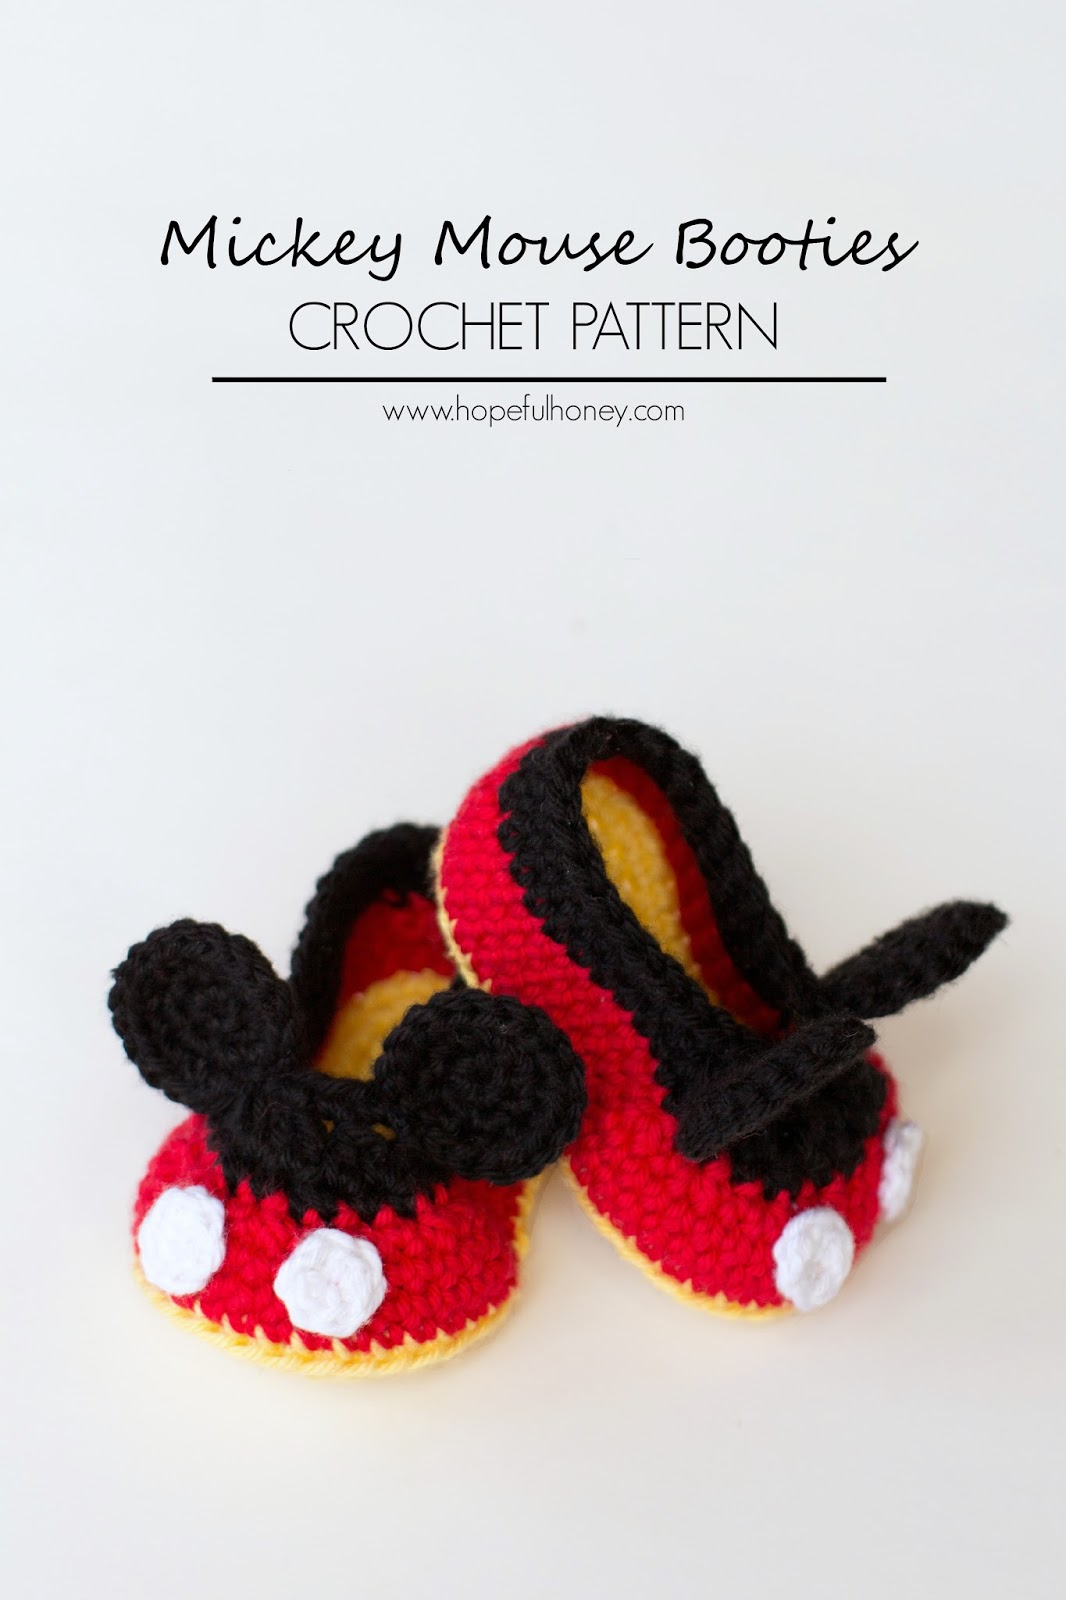 10 Free Baby Booties Crochet Patterns | Over the Moon and Sun